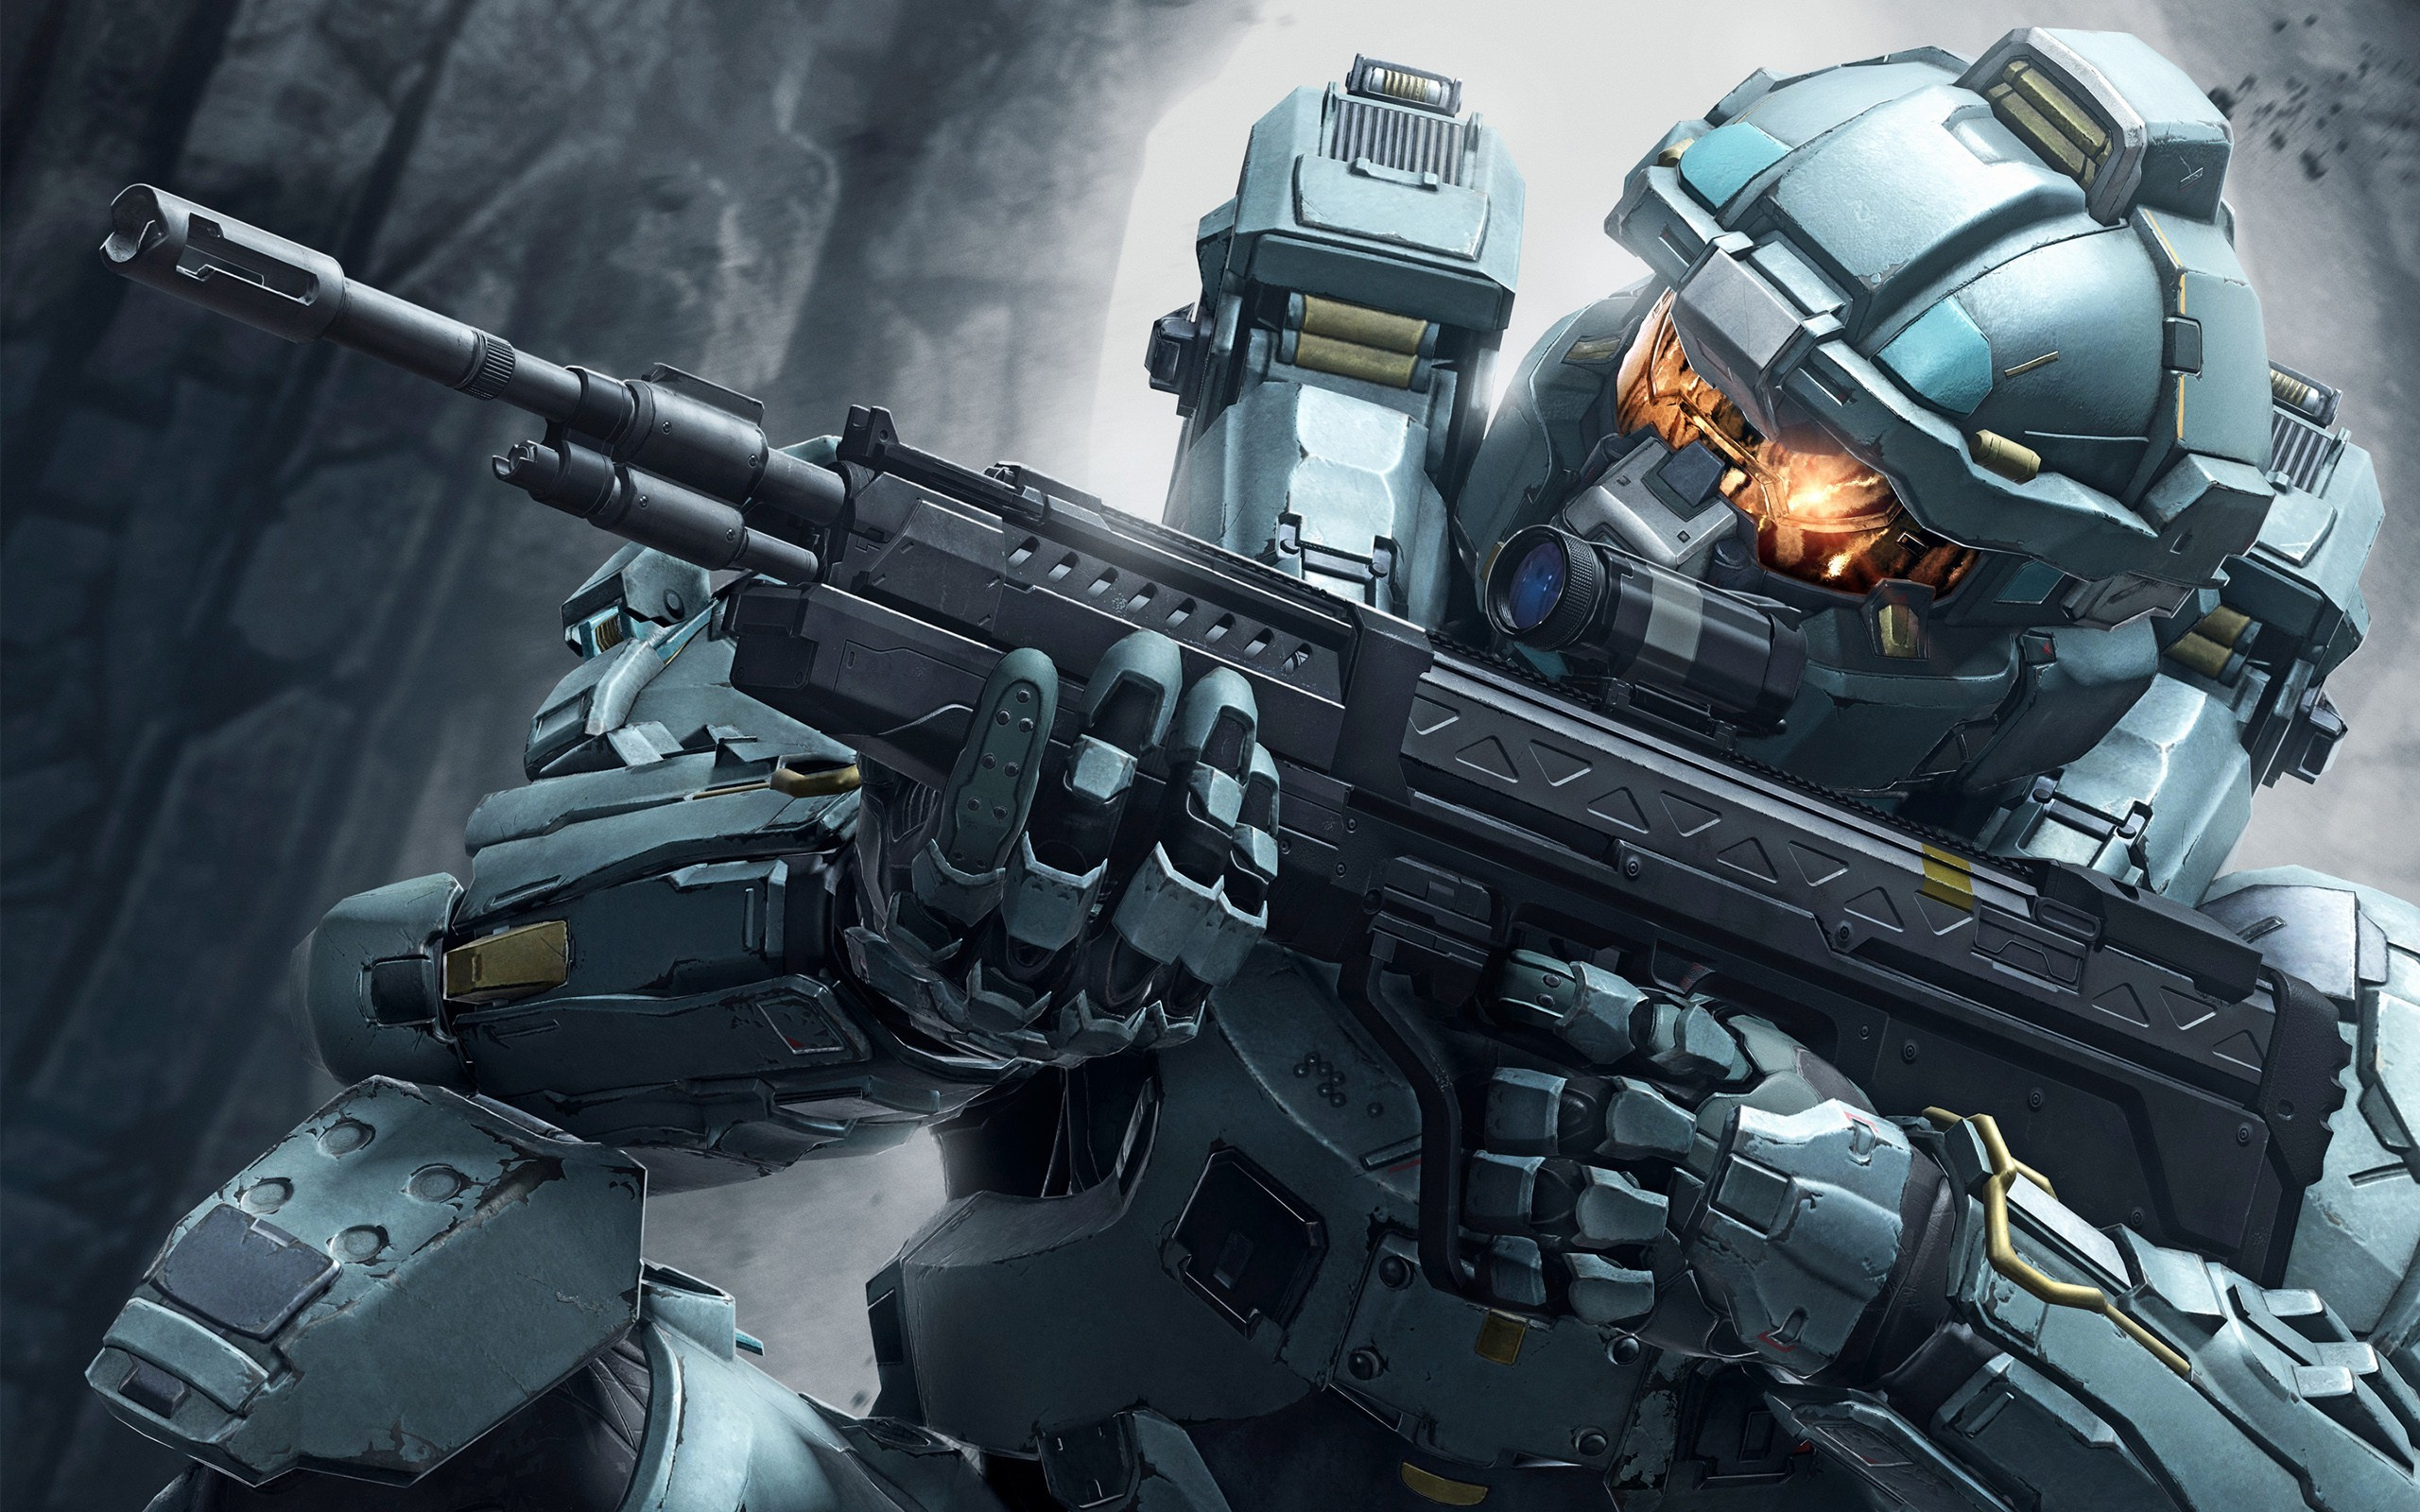 Halo Wallpaper Fall Of Reach Halo 5 Video Games Soldier Military Weapon Fred 104